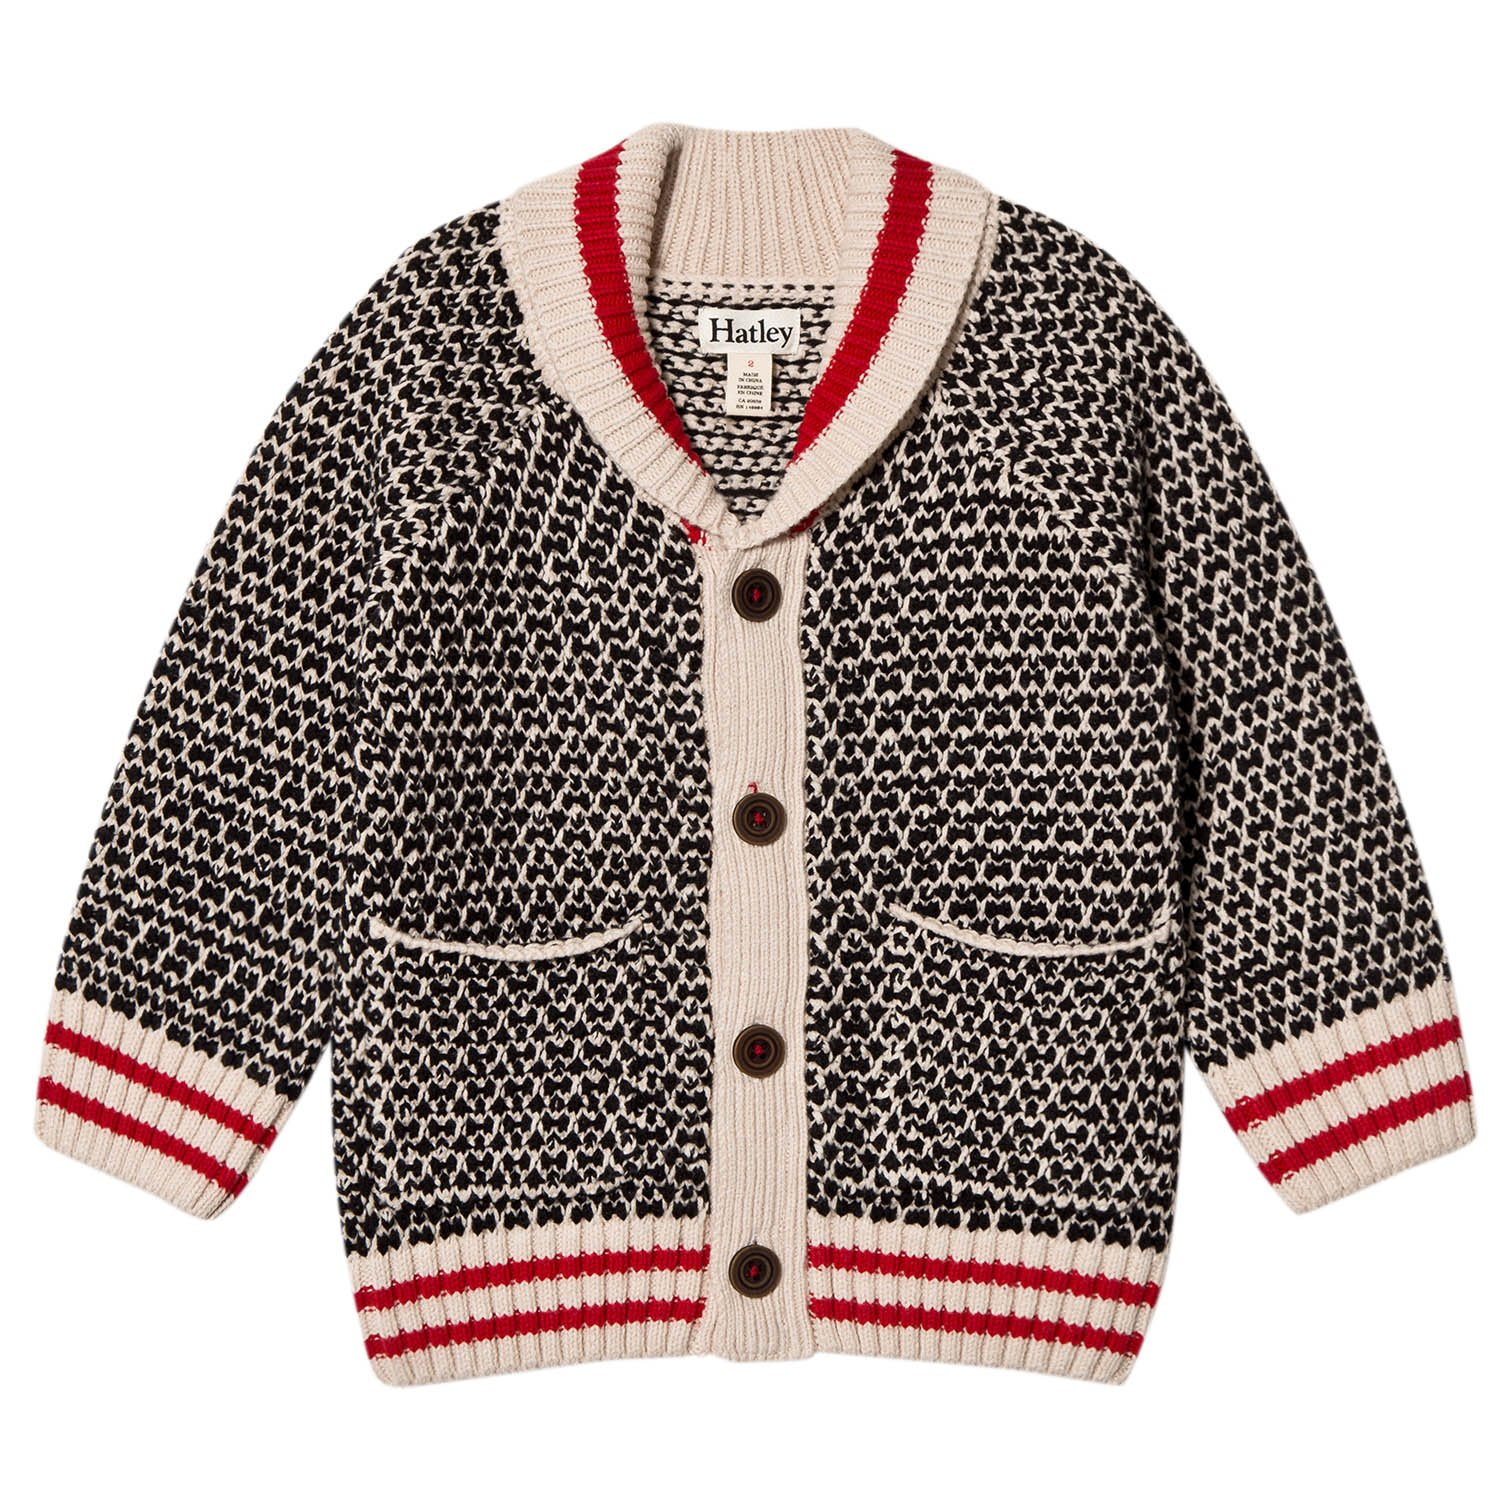 Grandpa Sweater by Hatley